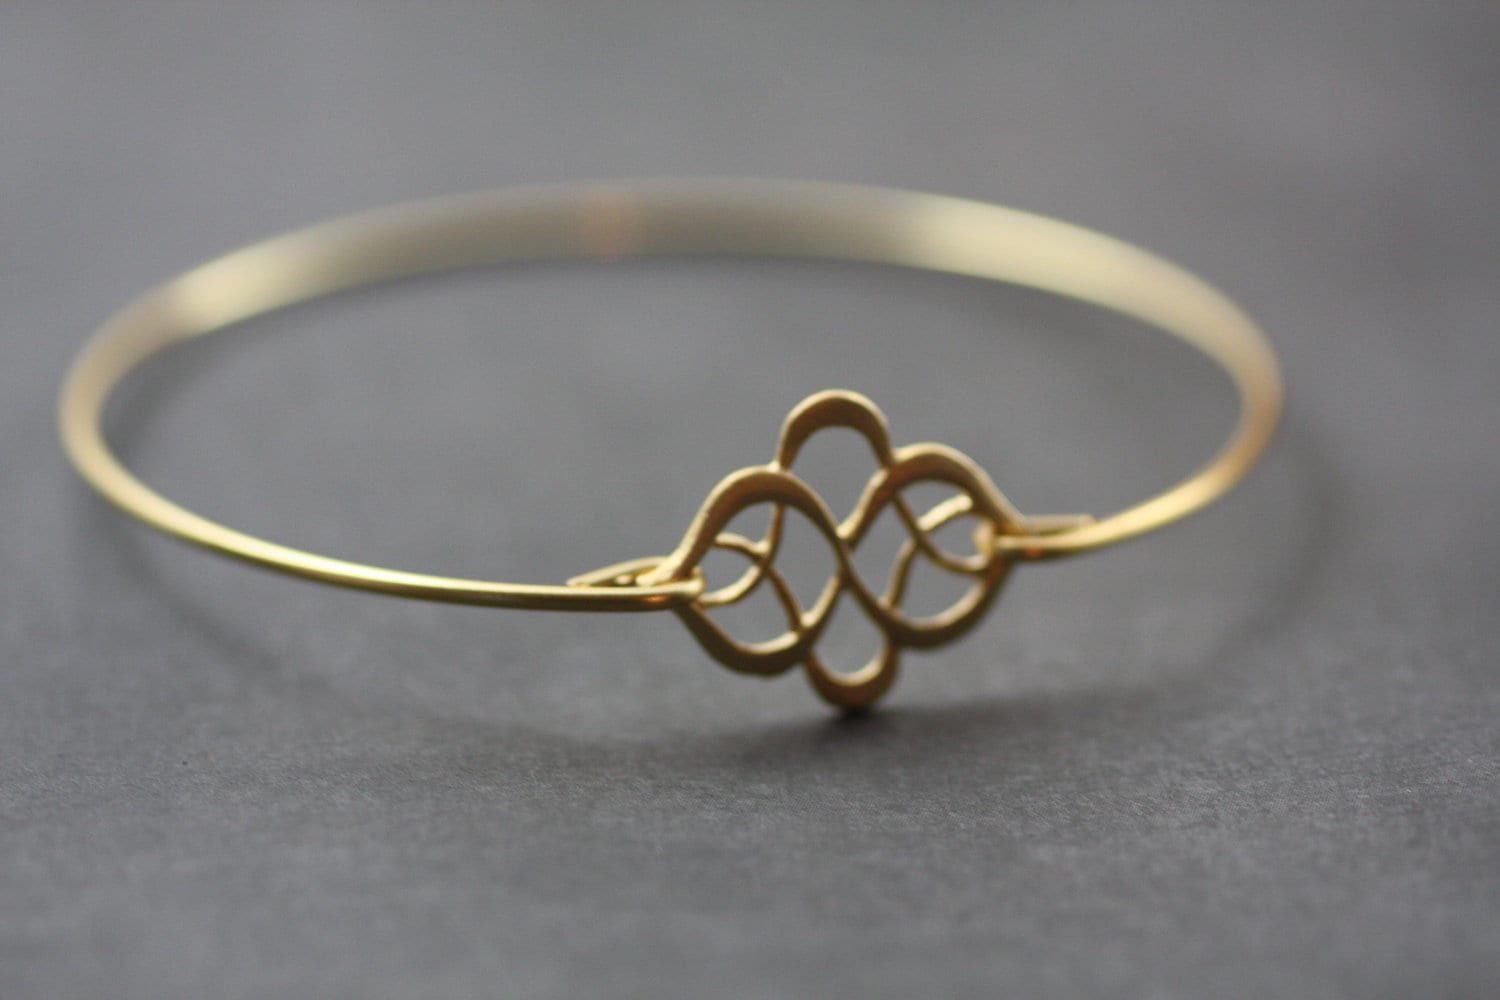 How To Make A Love Knot Wire Ring